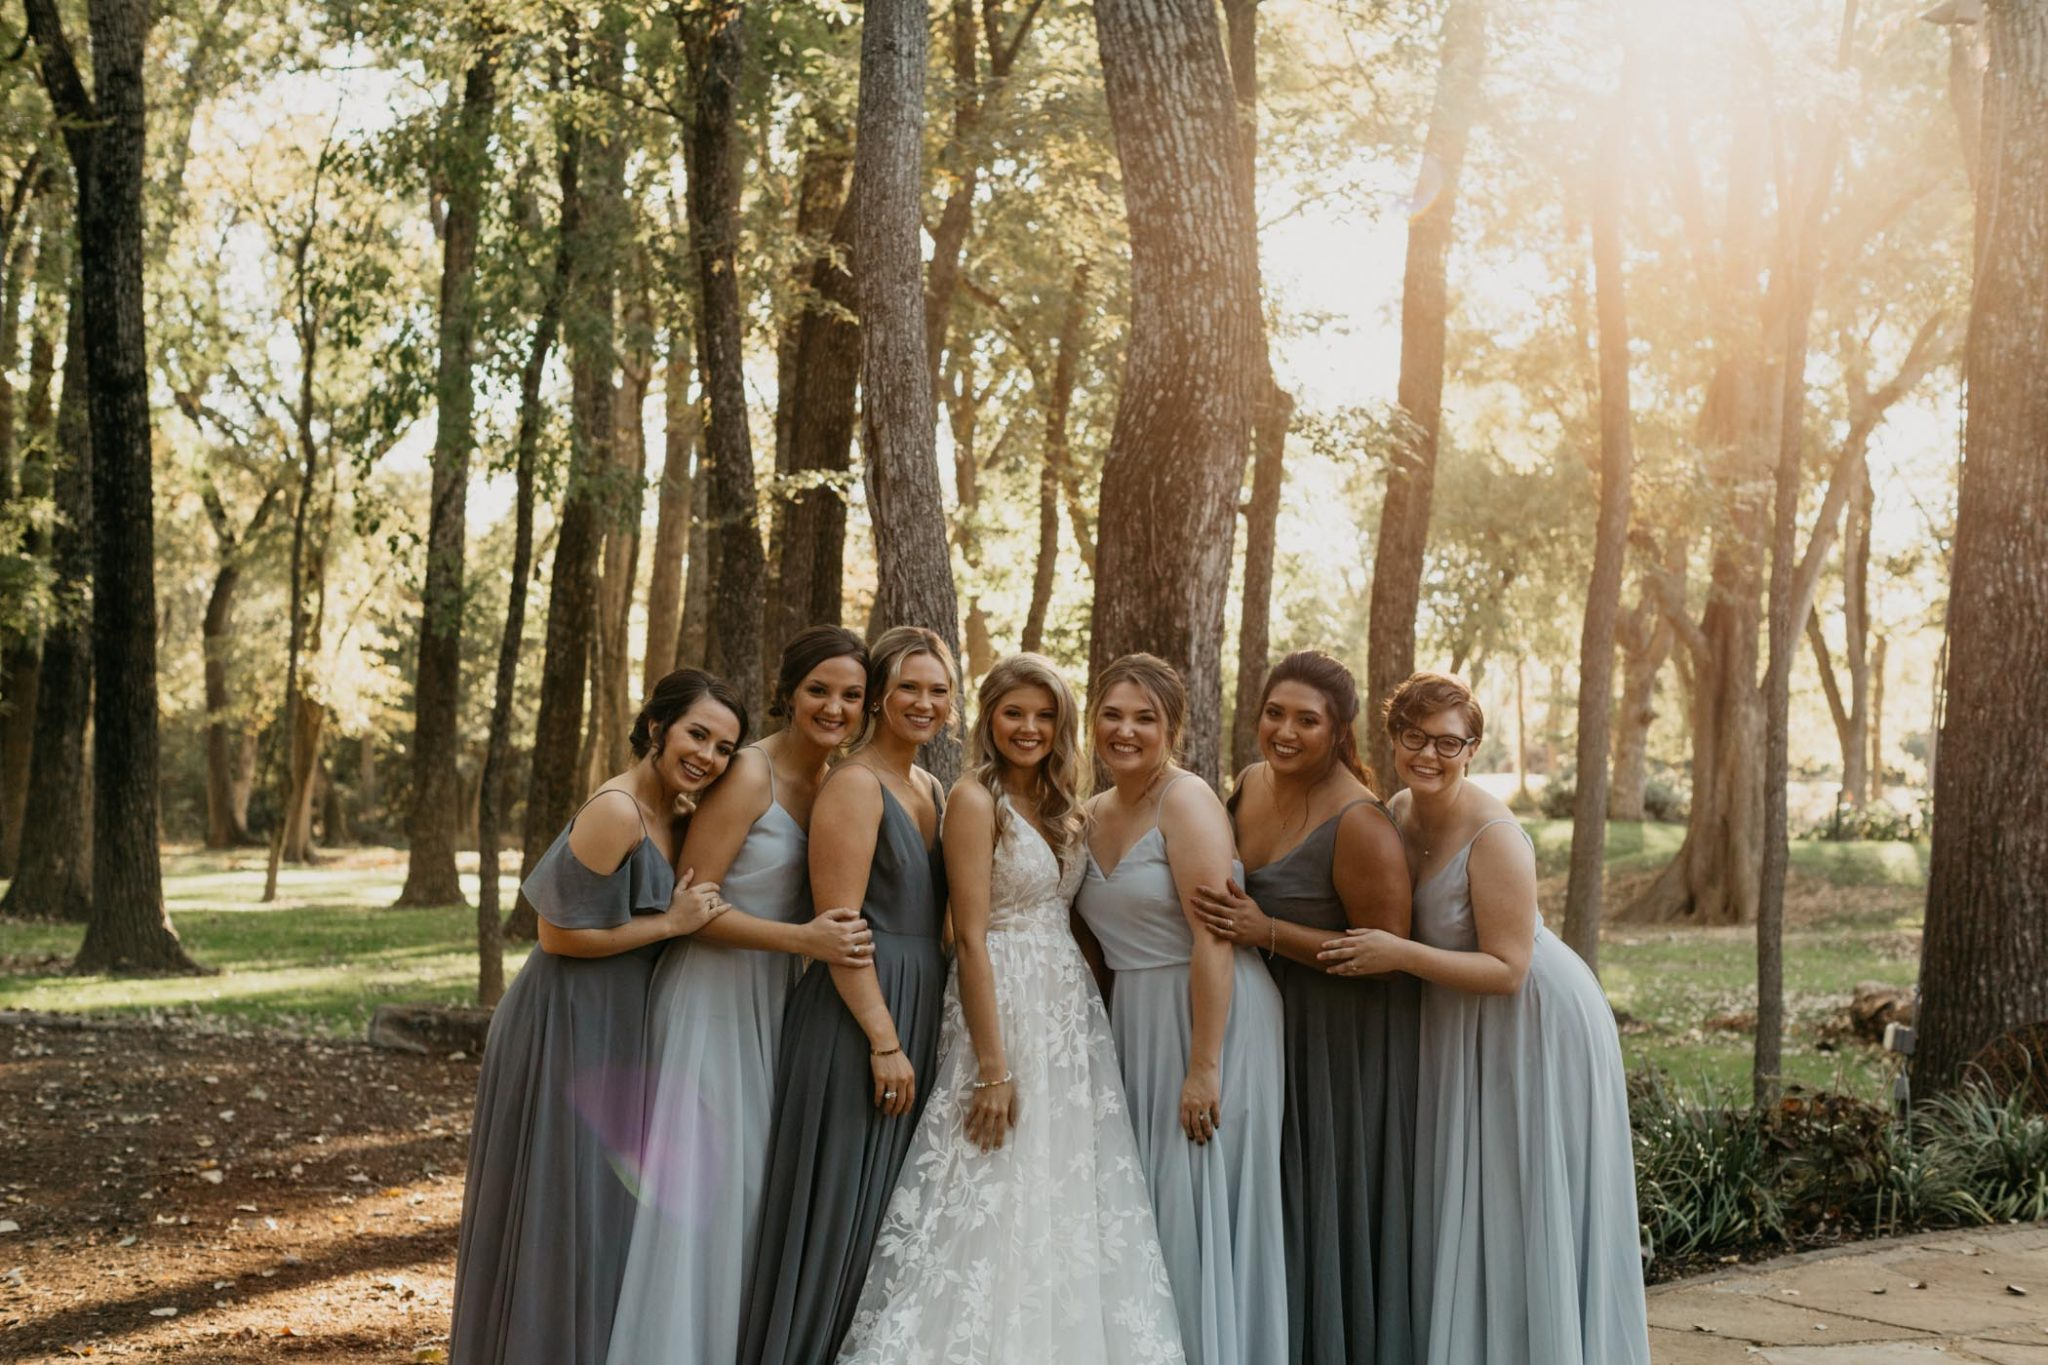 bridesmaids looking at each other during formal photos